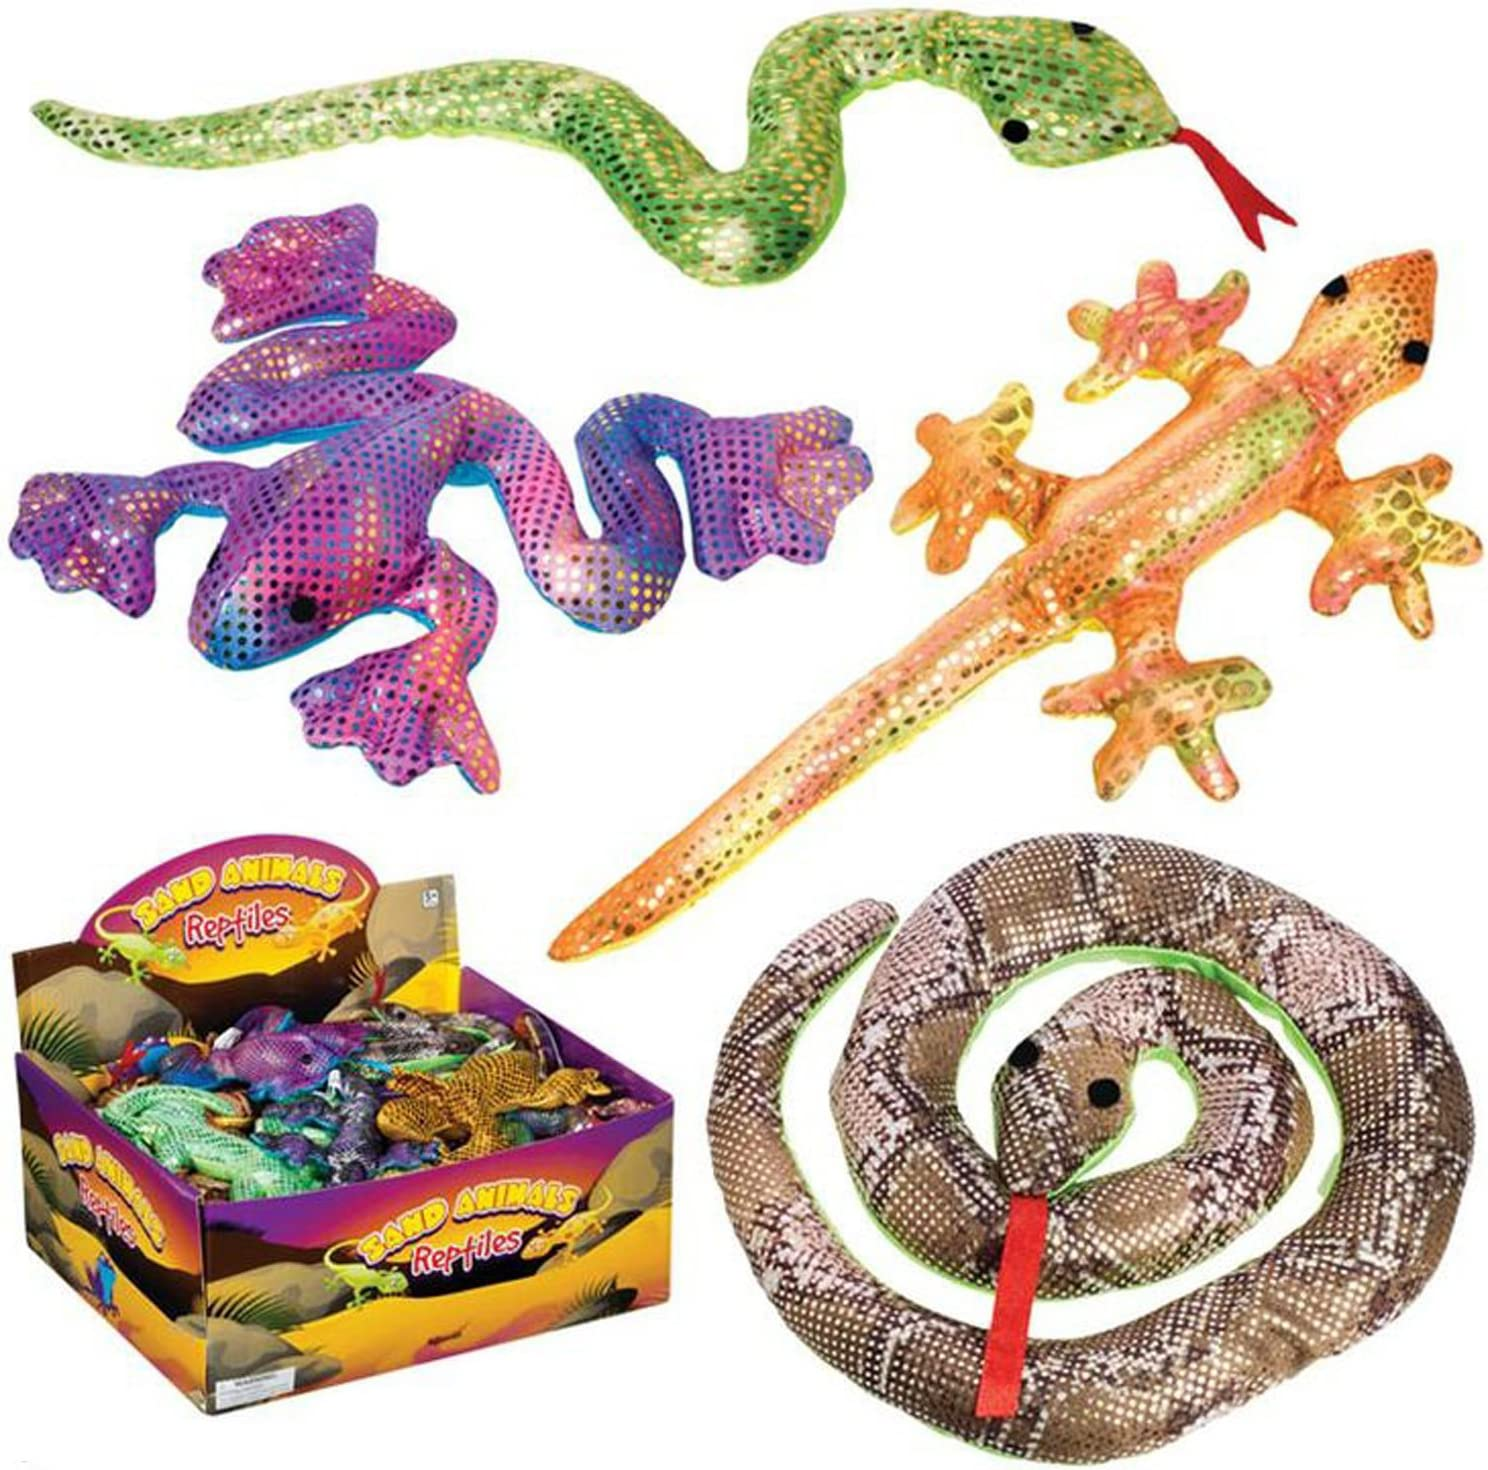 Sand Filled Stuffed Animals, Amazon Com Toysmith Sand Filled Shimmering Reptiles 1 Count Assorted Colors And Styles Toys Games